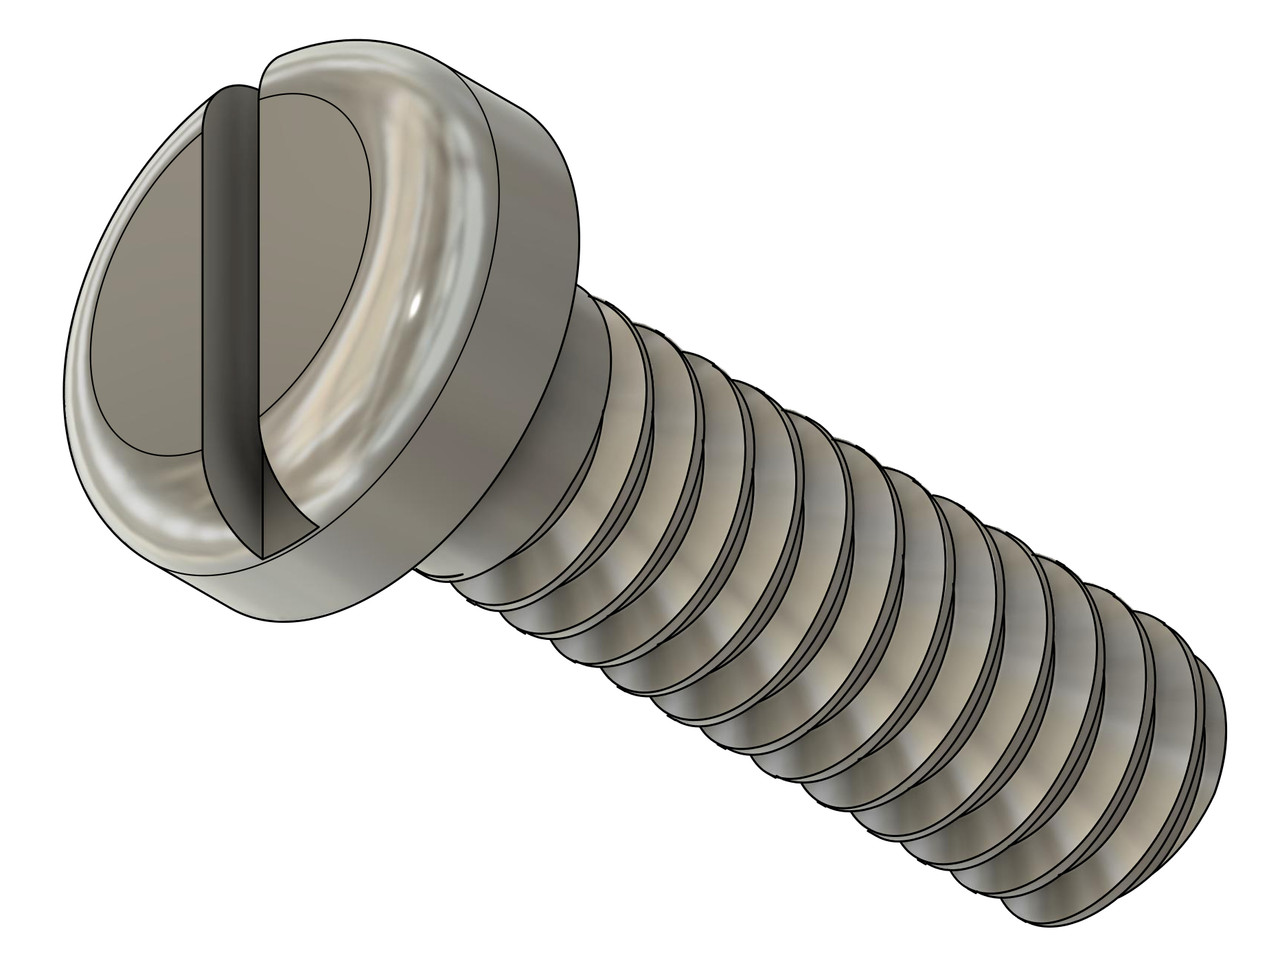 "Precision Machine Screw Pan Head, Thread 0-80 2A x 3/16"" length, Head diameter .102"" (2.60mm), Material Stainless Steel #303, price for 100 pieces, finish color silver.  This screw was made on precision screw machines in Switzerland, burr free and instrument quality.  This screw was not cold headed."